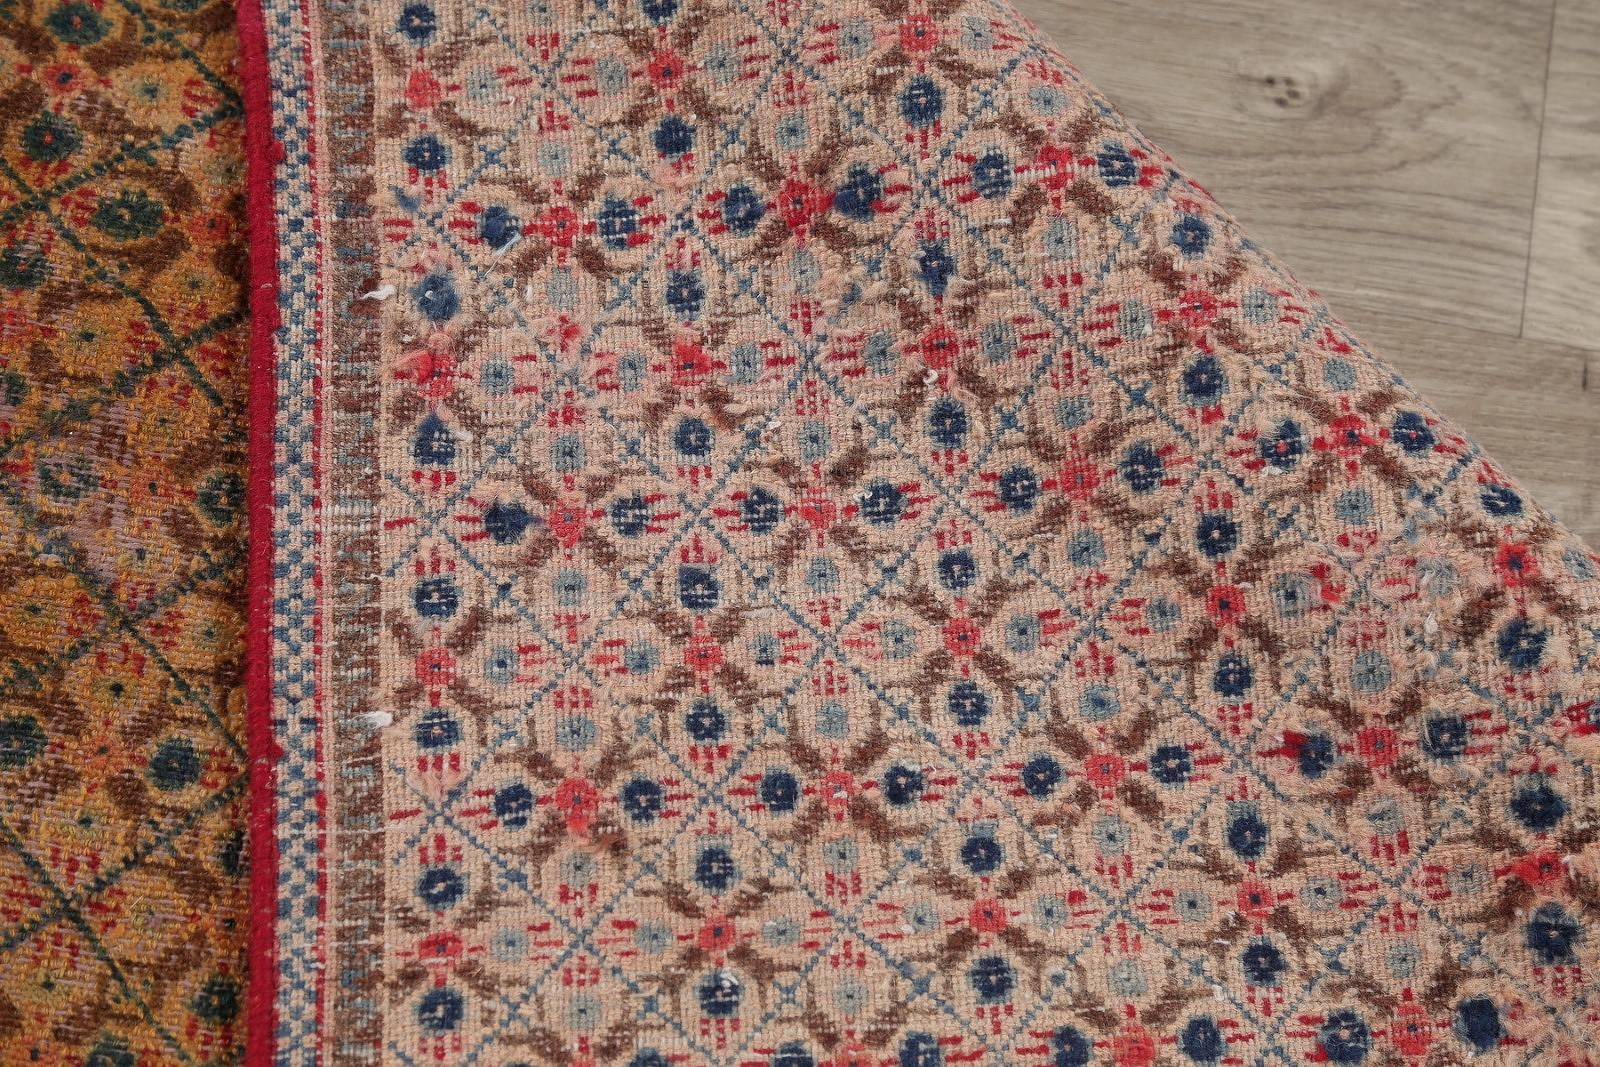 All-Over Geometric Gold Mood Kashmar Persian Hand-Knotted Area Rug Wool 6x9